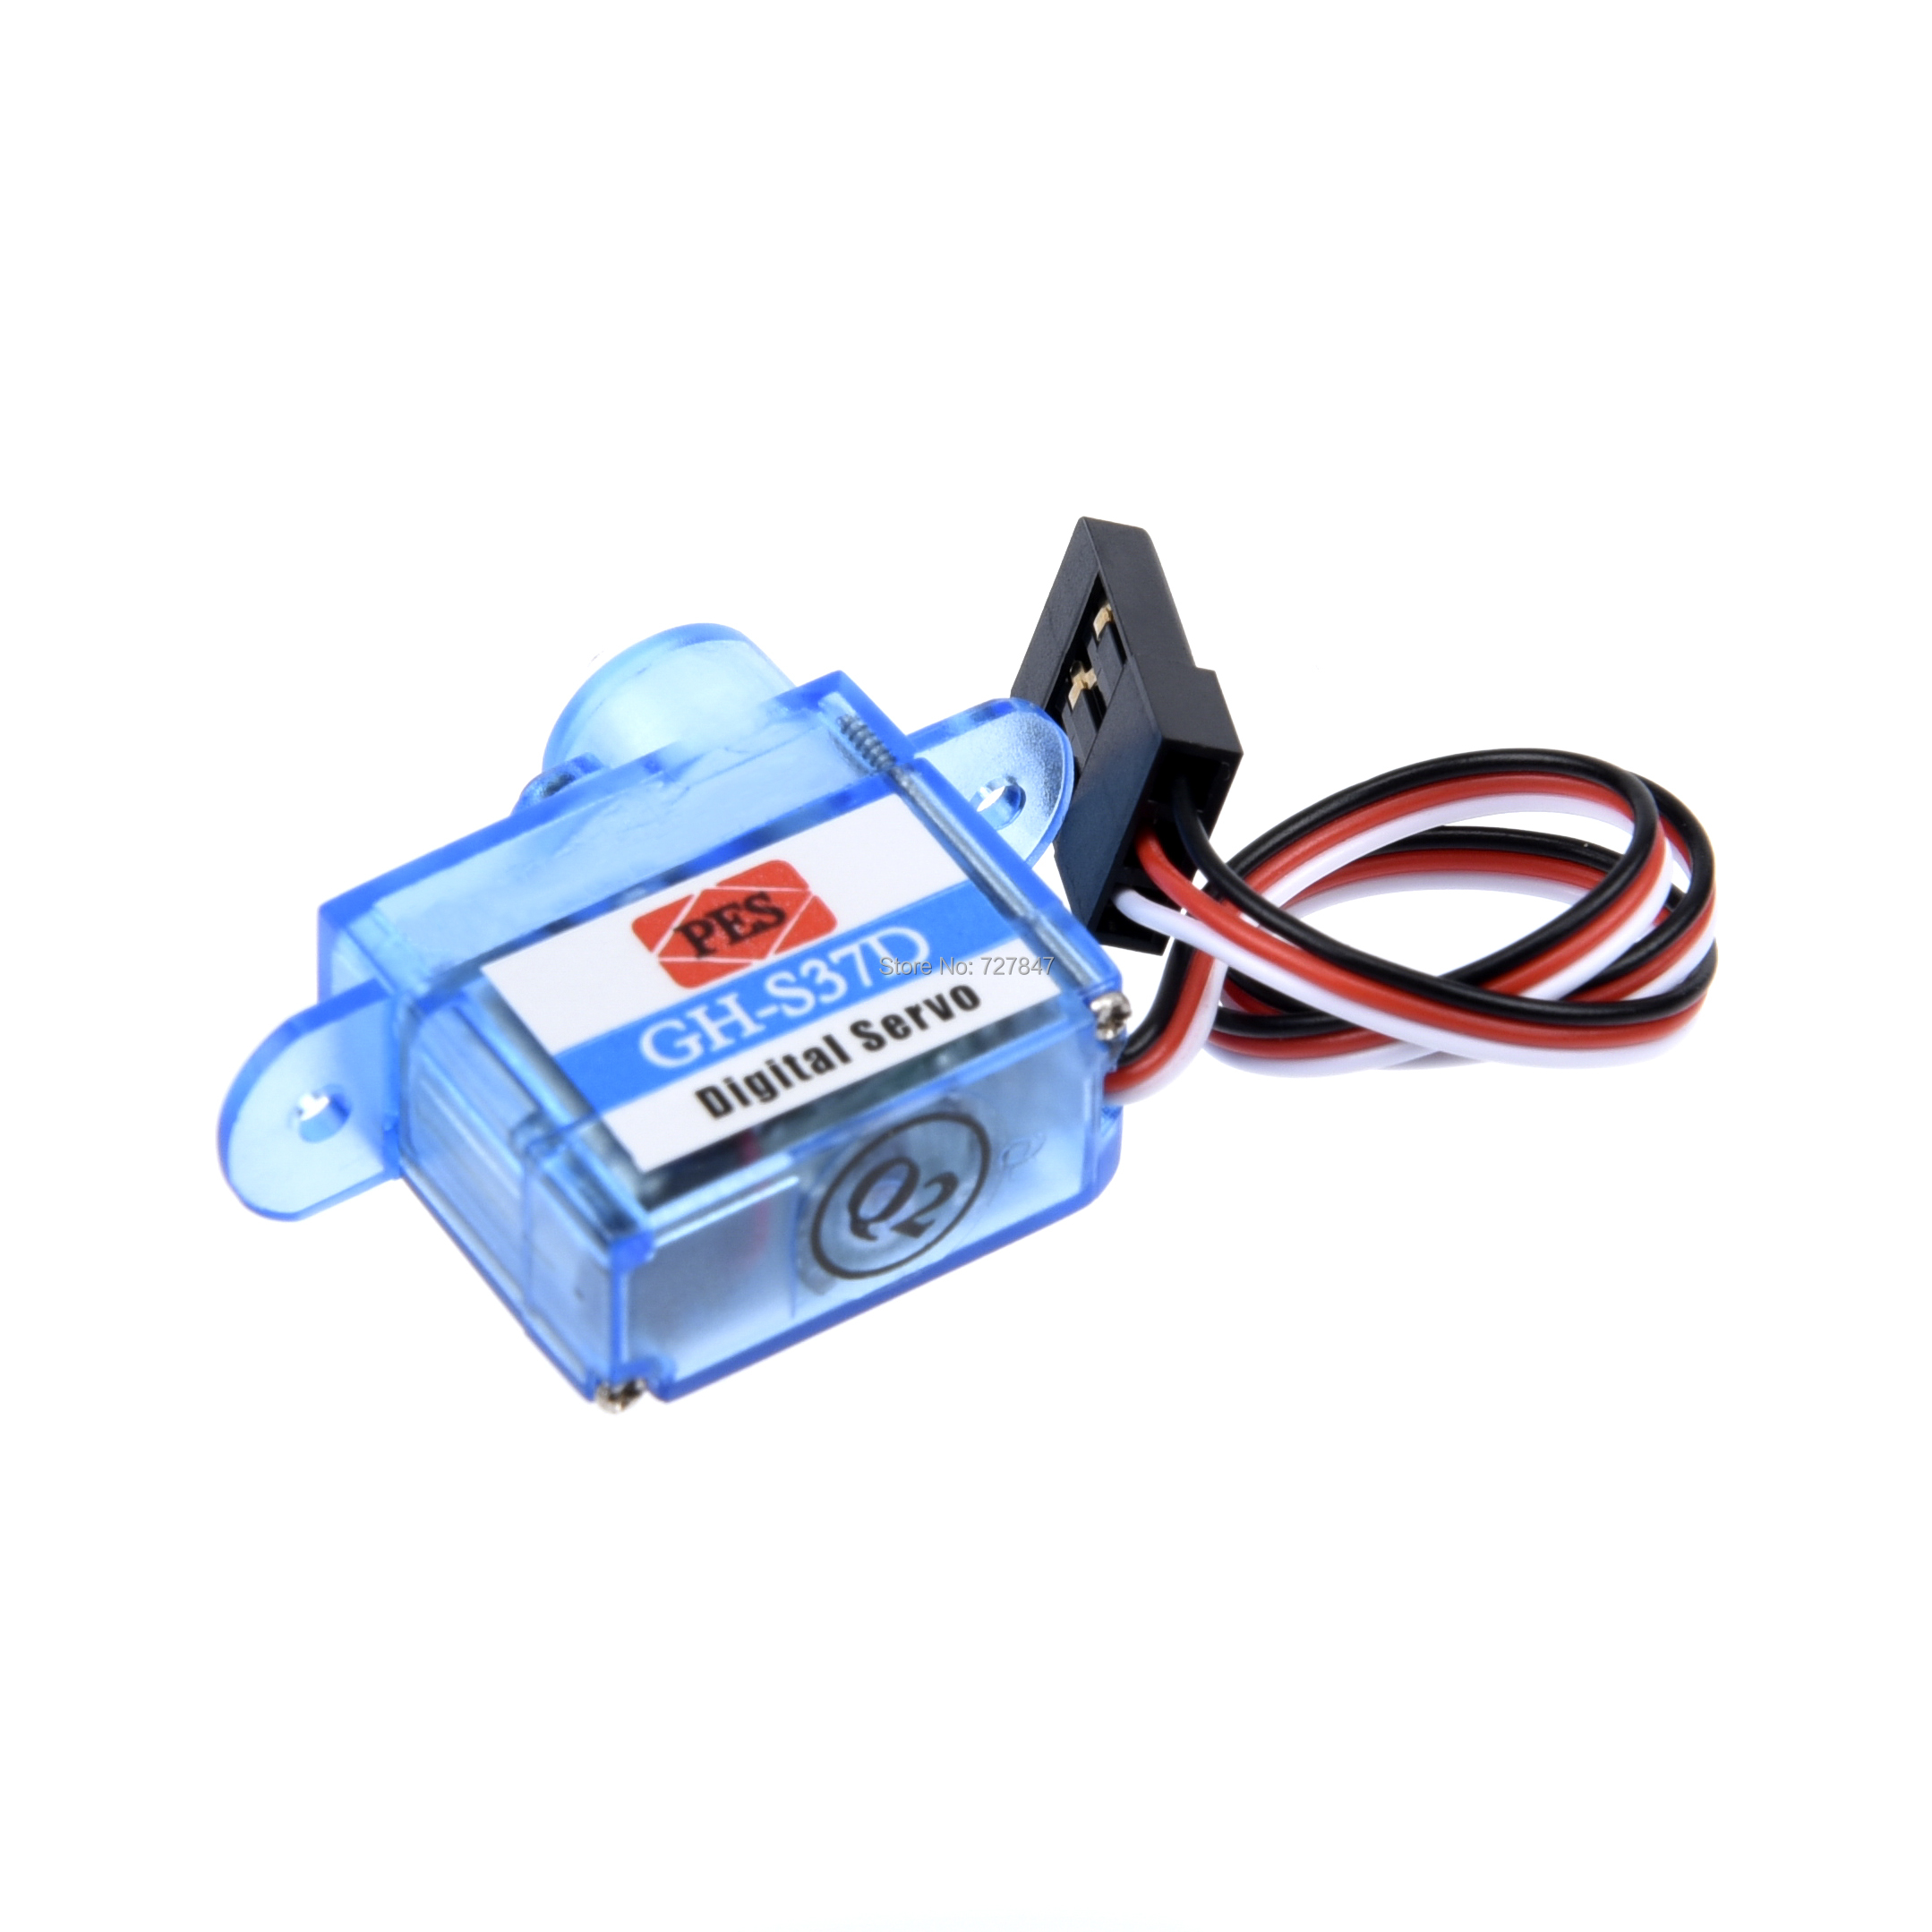 NEW PES GH-S37D GH-S37A 3.7g Servo Mini Micro Servo For RC Plane Helicopter Boat Car